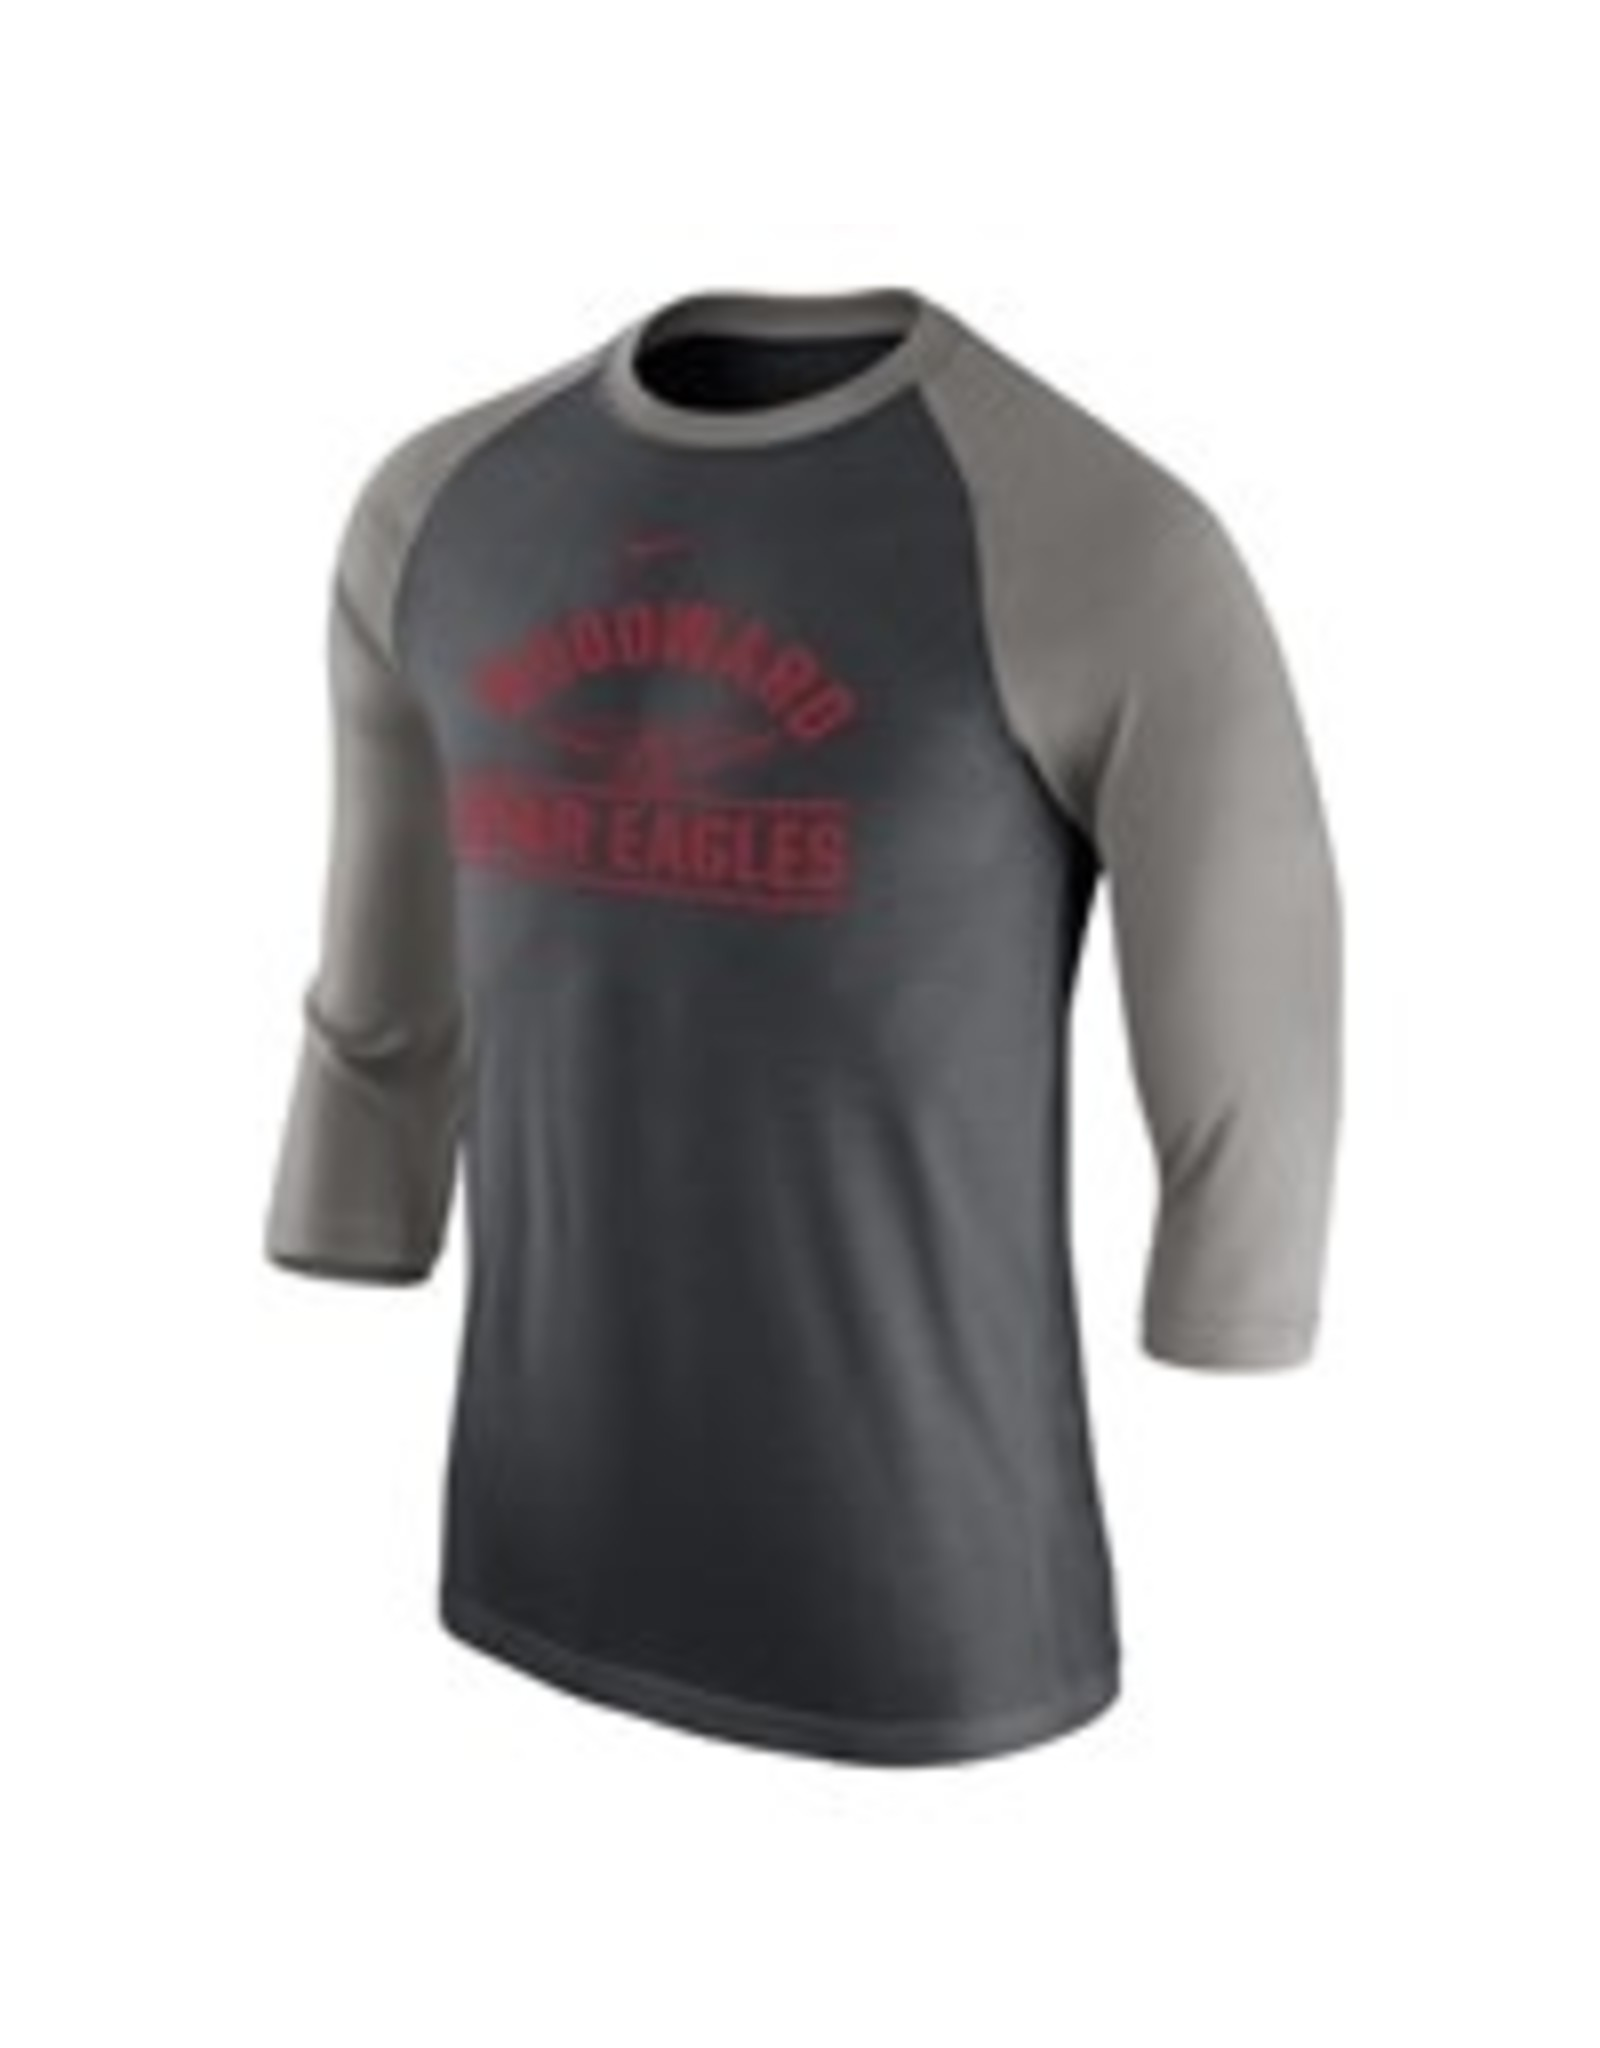 NIKE Raglan Tri-Blend 3/4 Sleeve T Shirt (2 Colors)